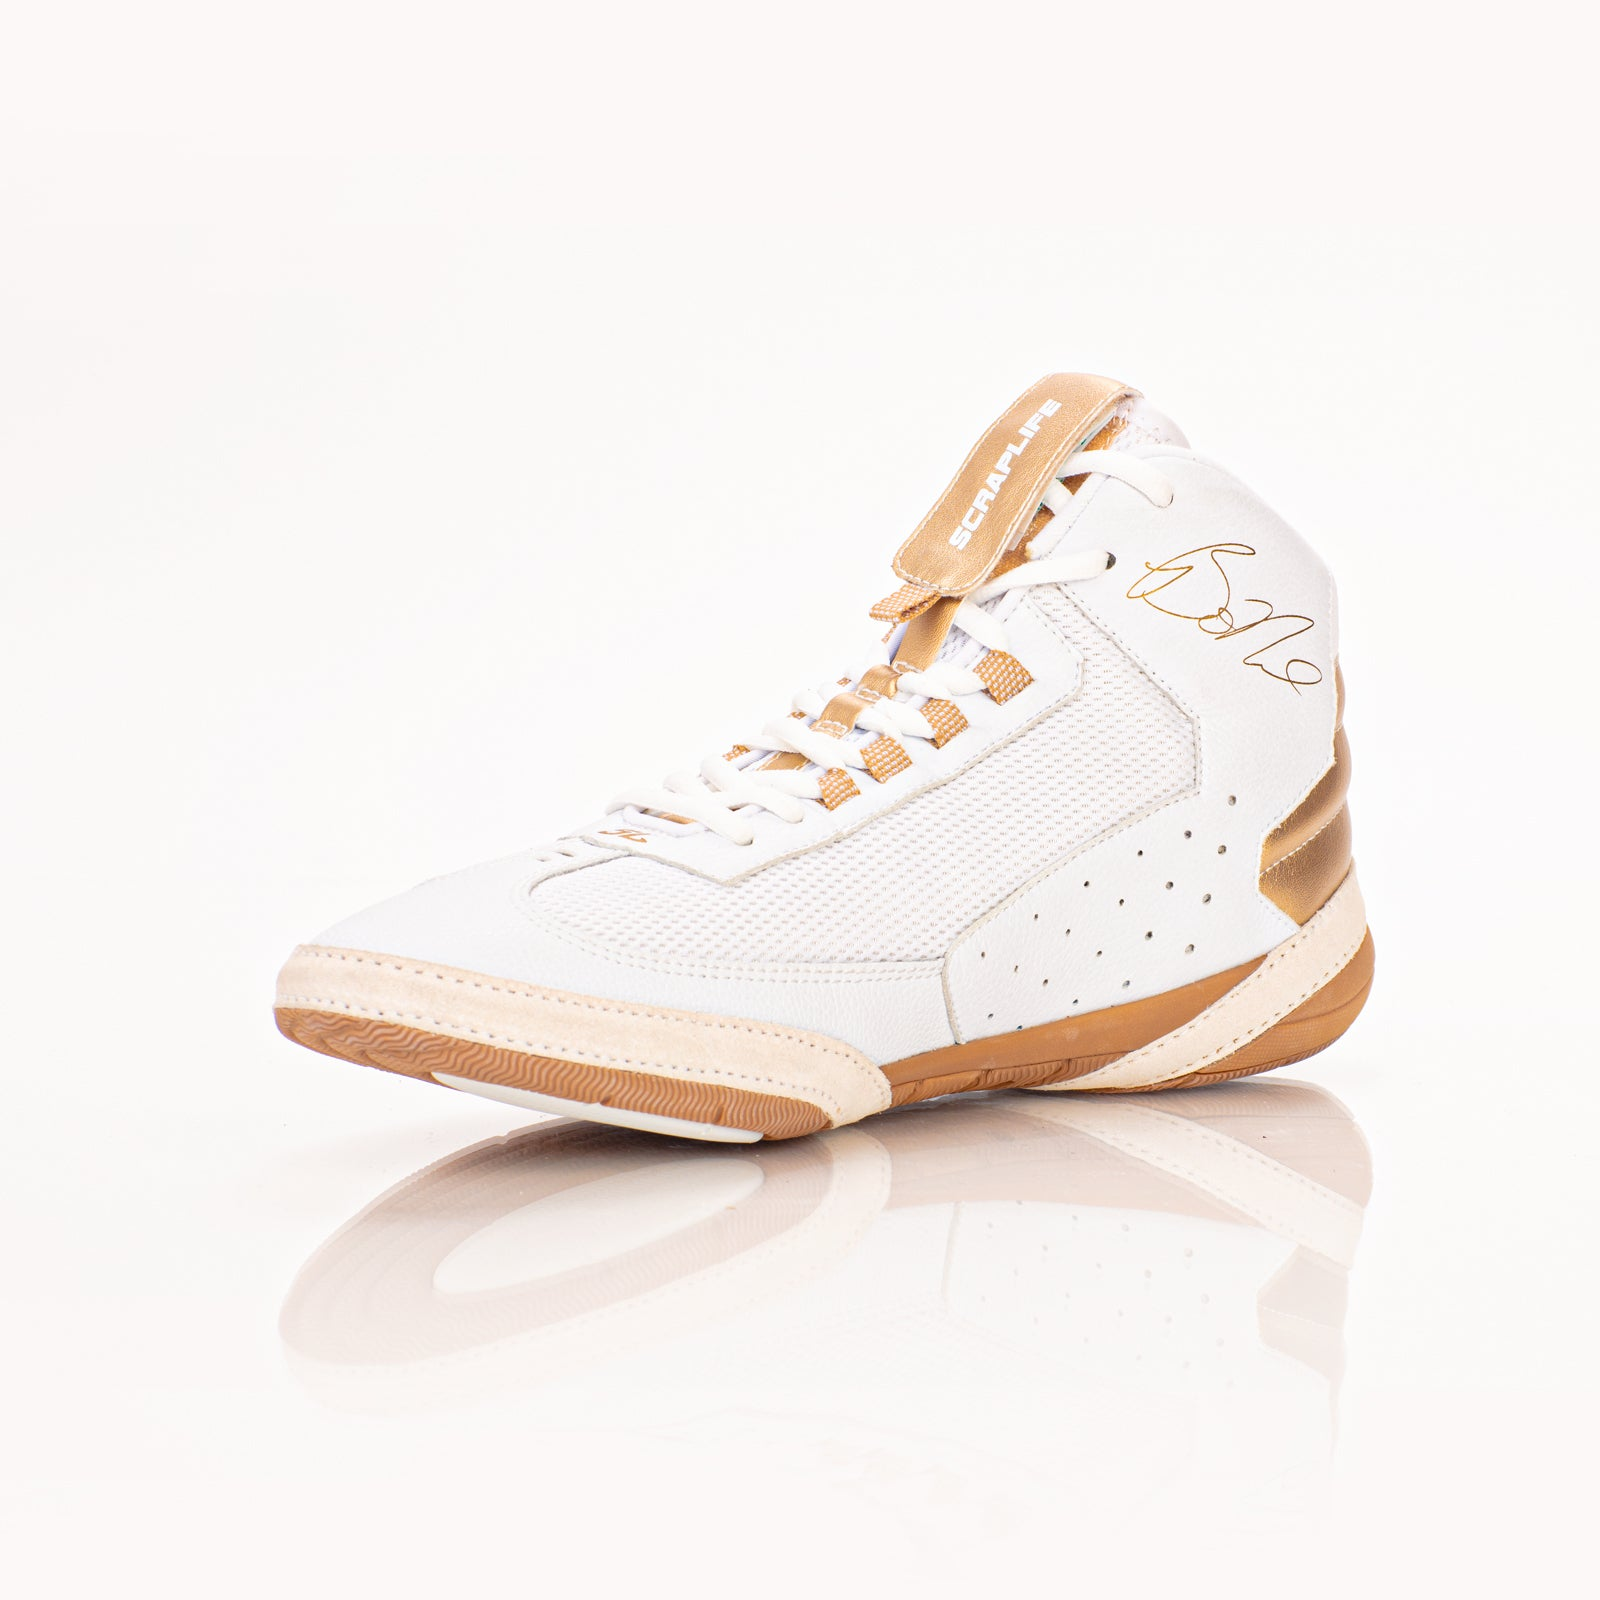 Ascend One - Bo Nickal Signature Model - White/Gold